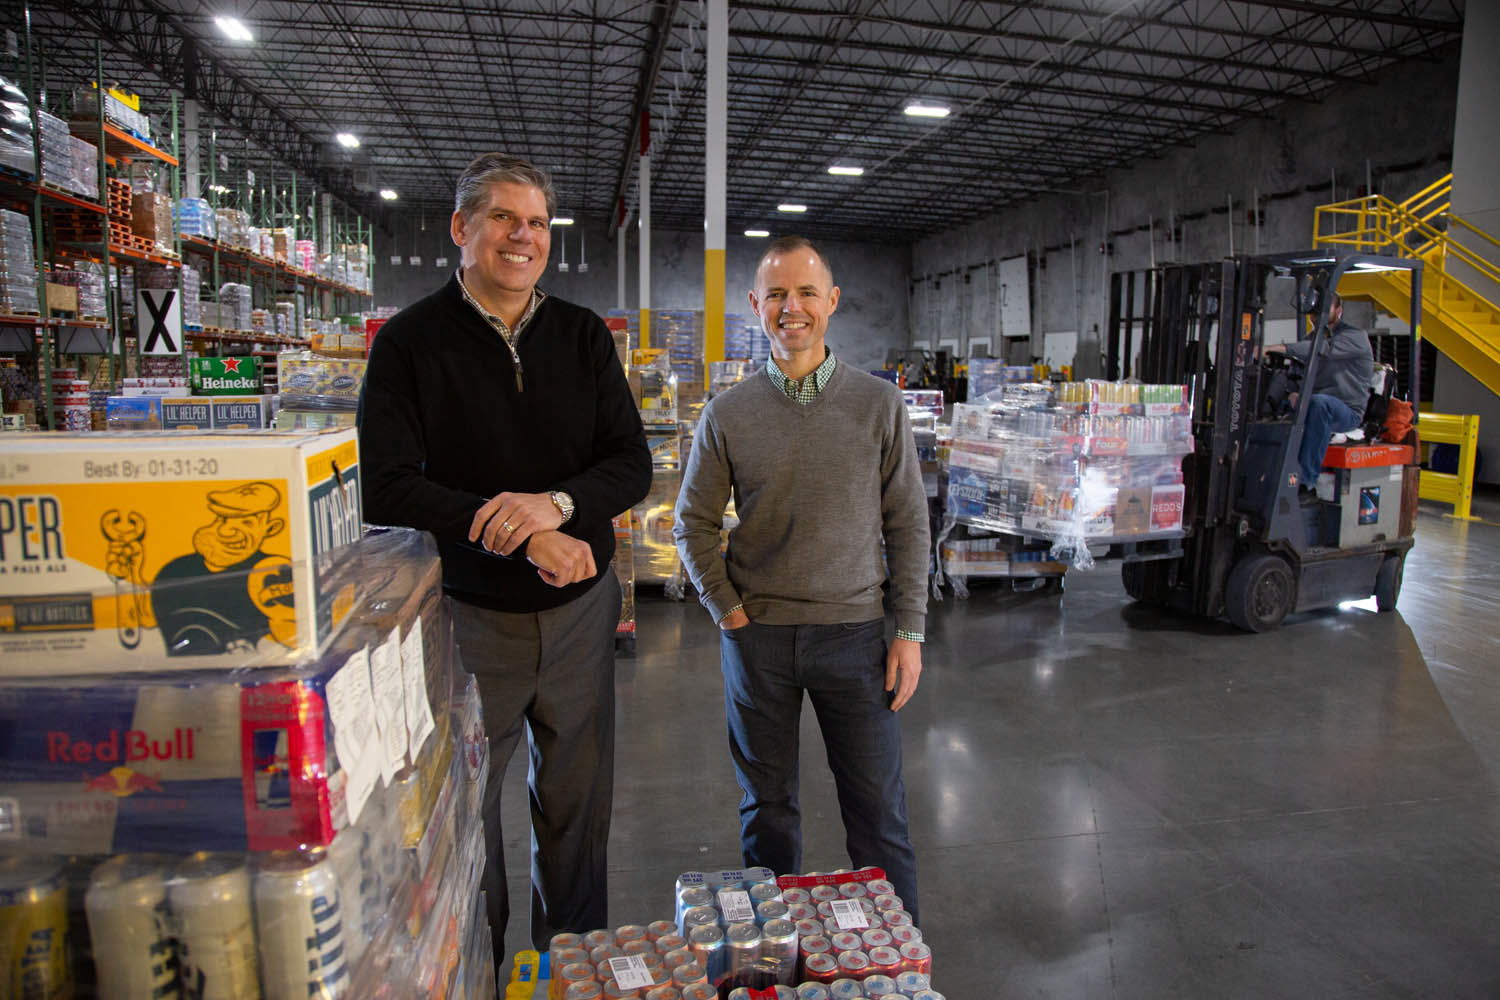 CUE THE BEER: Crews at Heart of America Beverage Co. average 385 deliveries per day, according to co-owners Brian Gelner, left, and Harwood Ferguson.